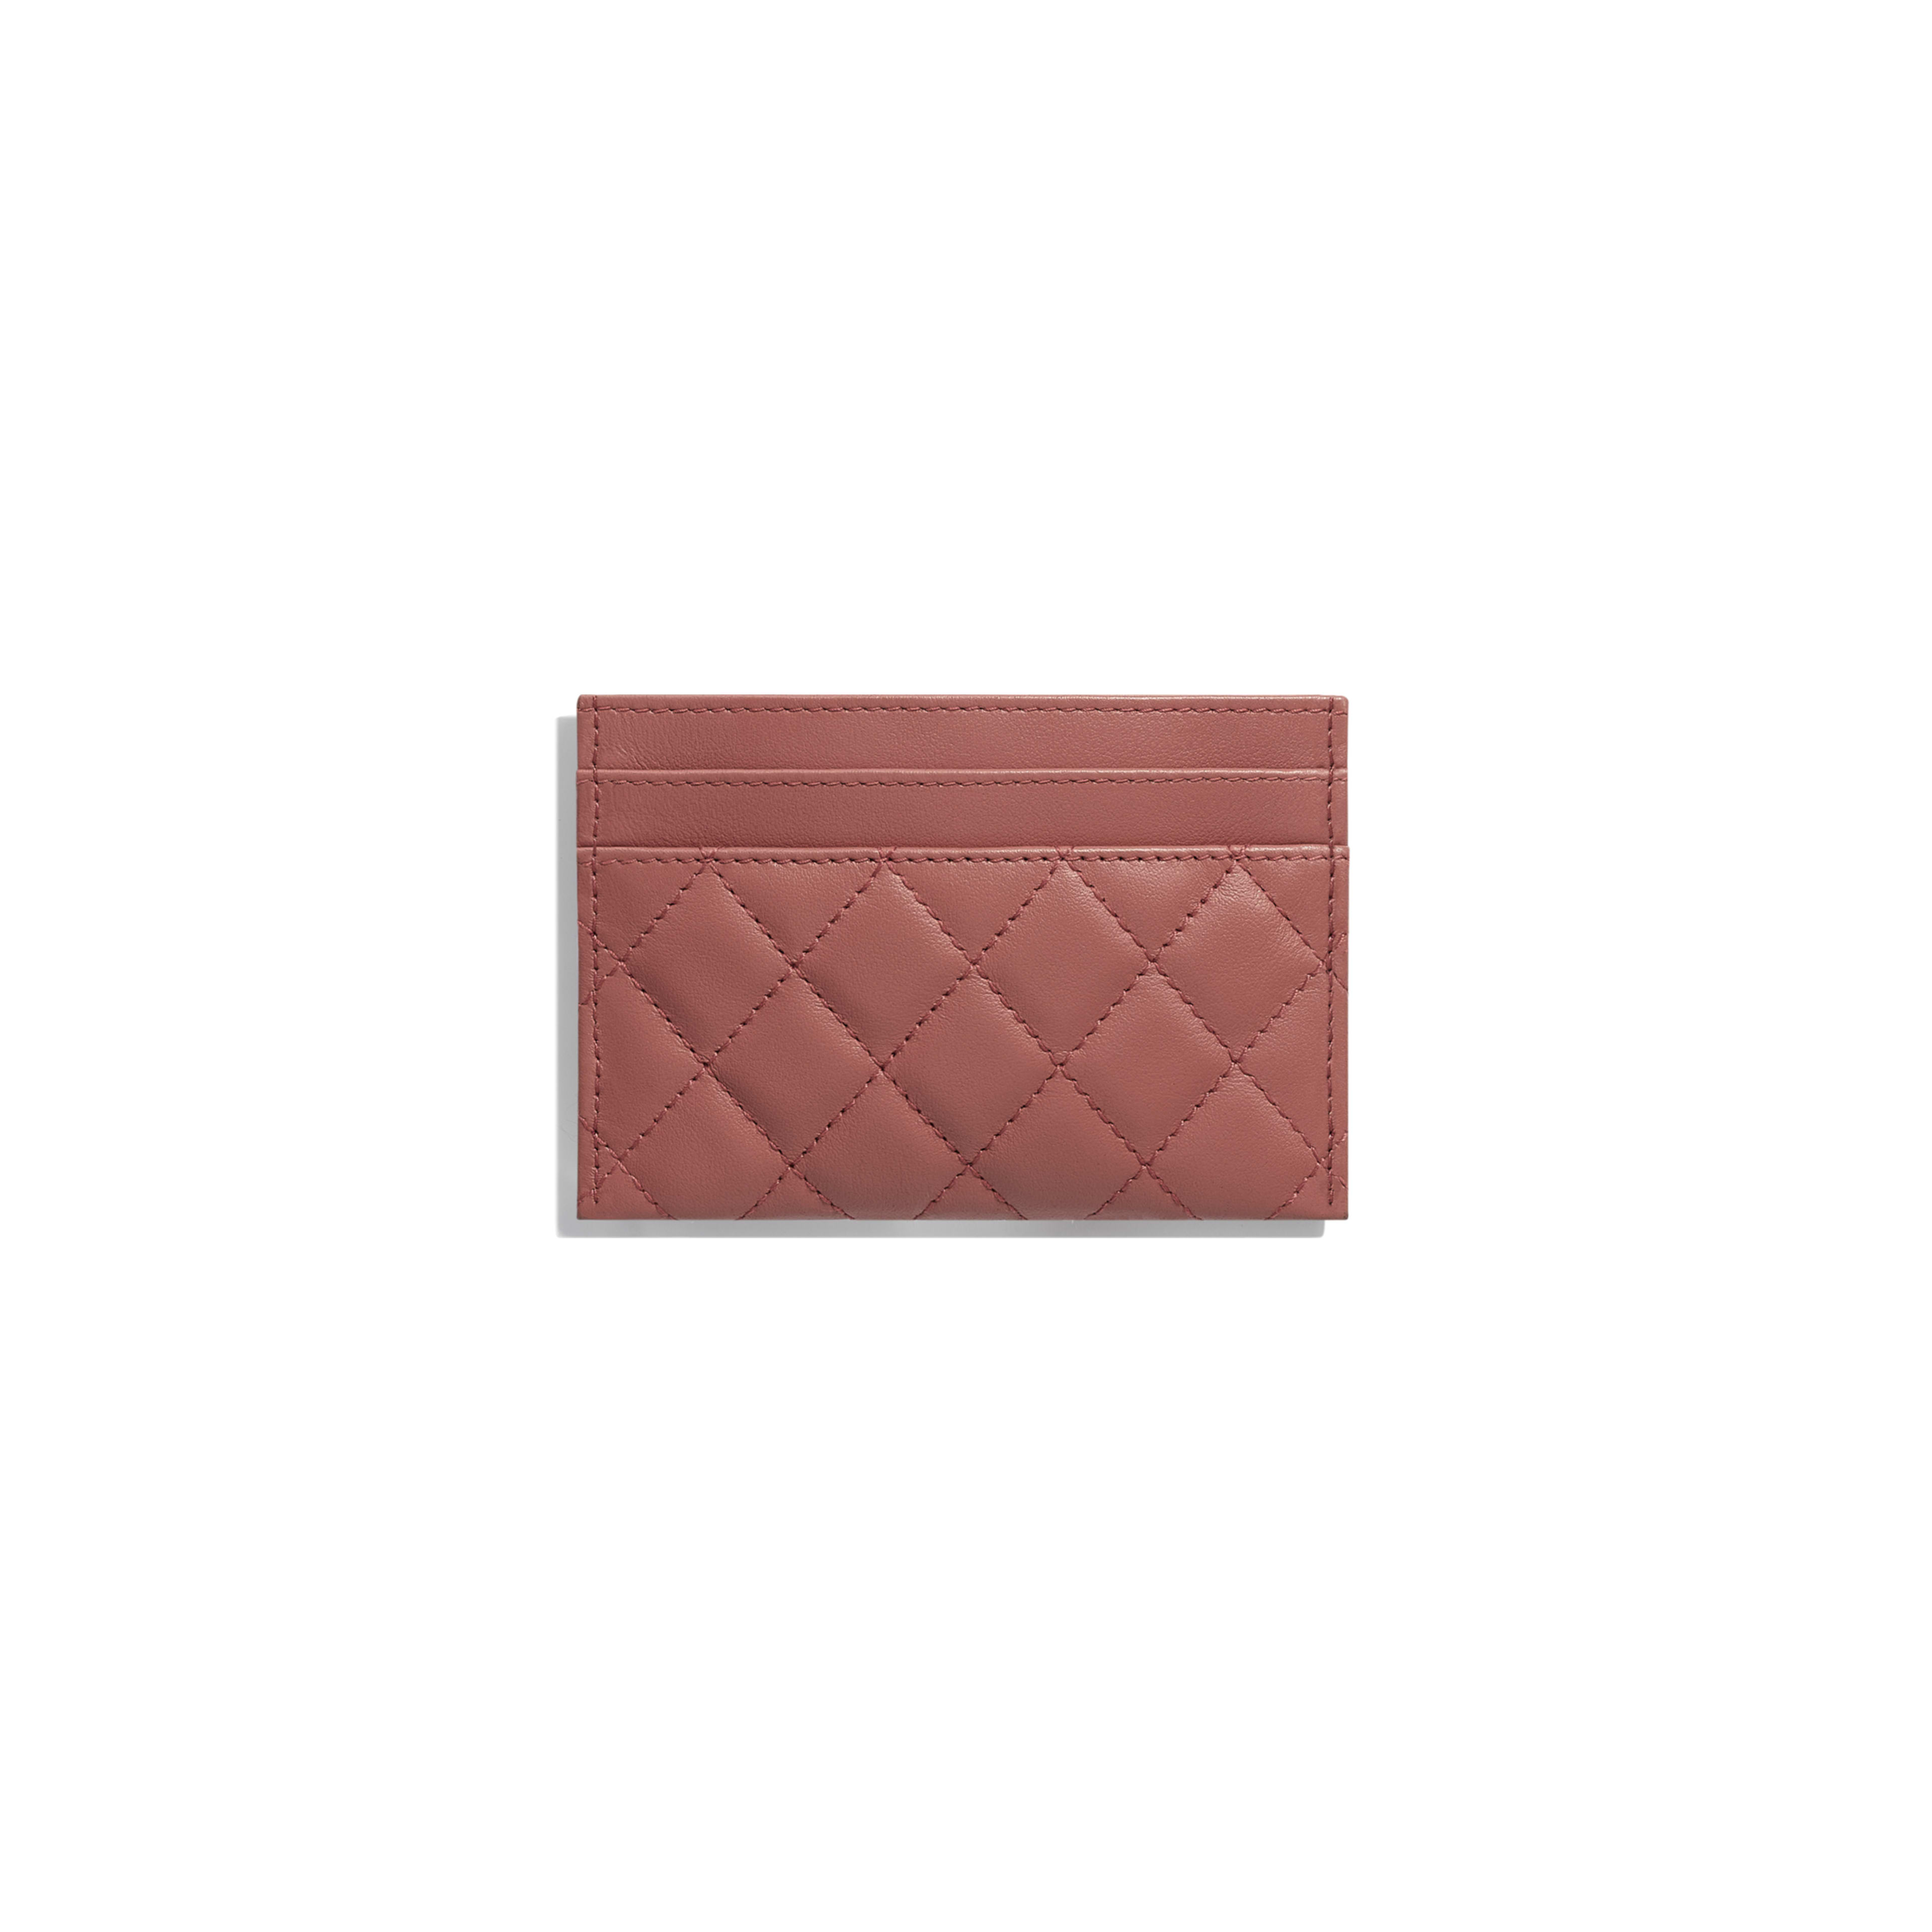 BOY CHANEL Card Holder Calfskin & Gold-Tone Metal Dark Red -                                       view 2 - see full sized version